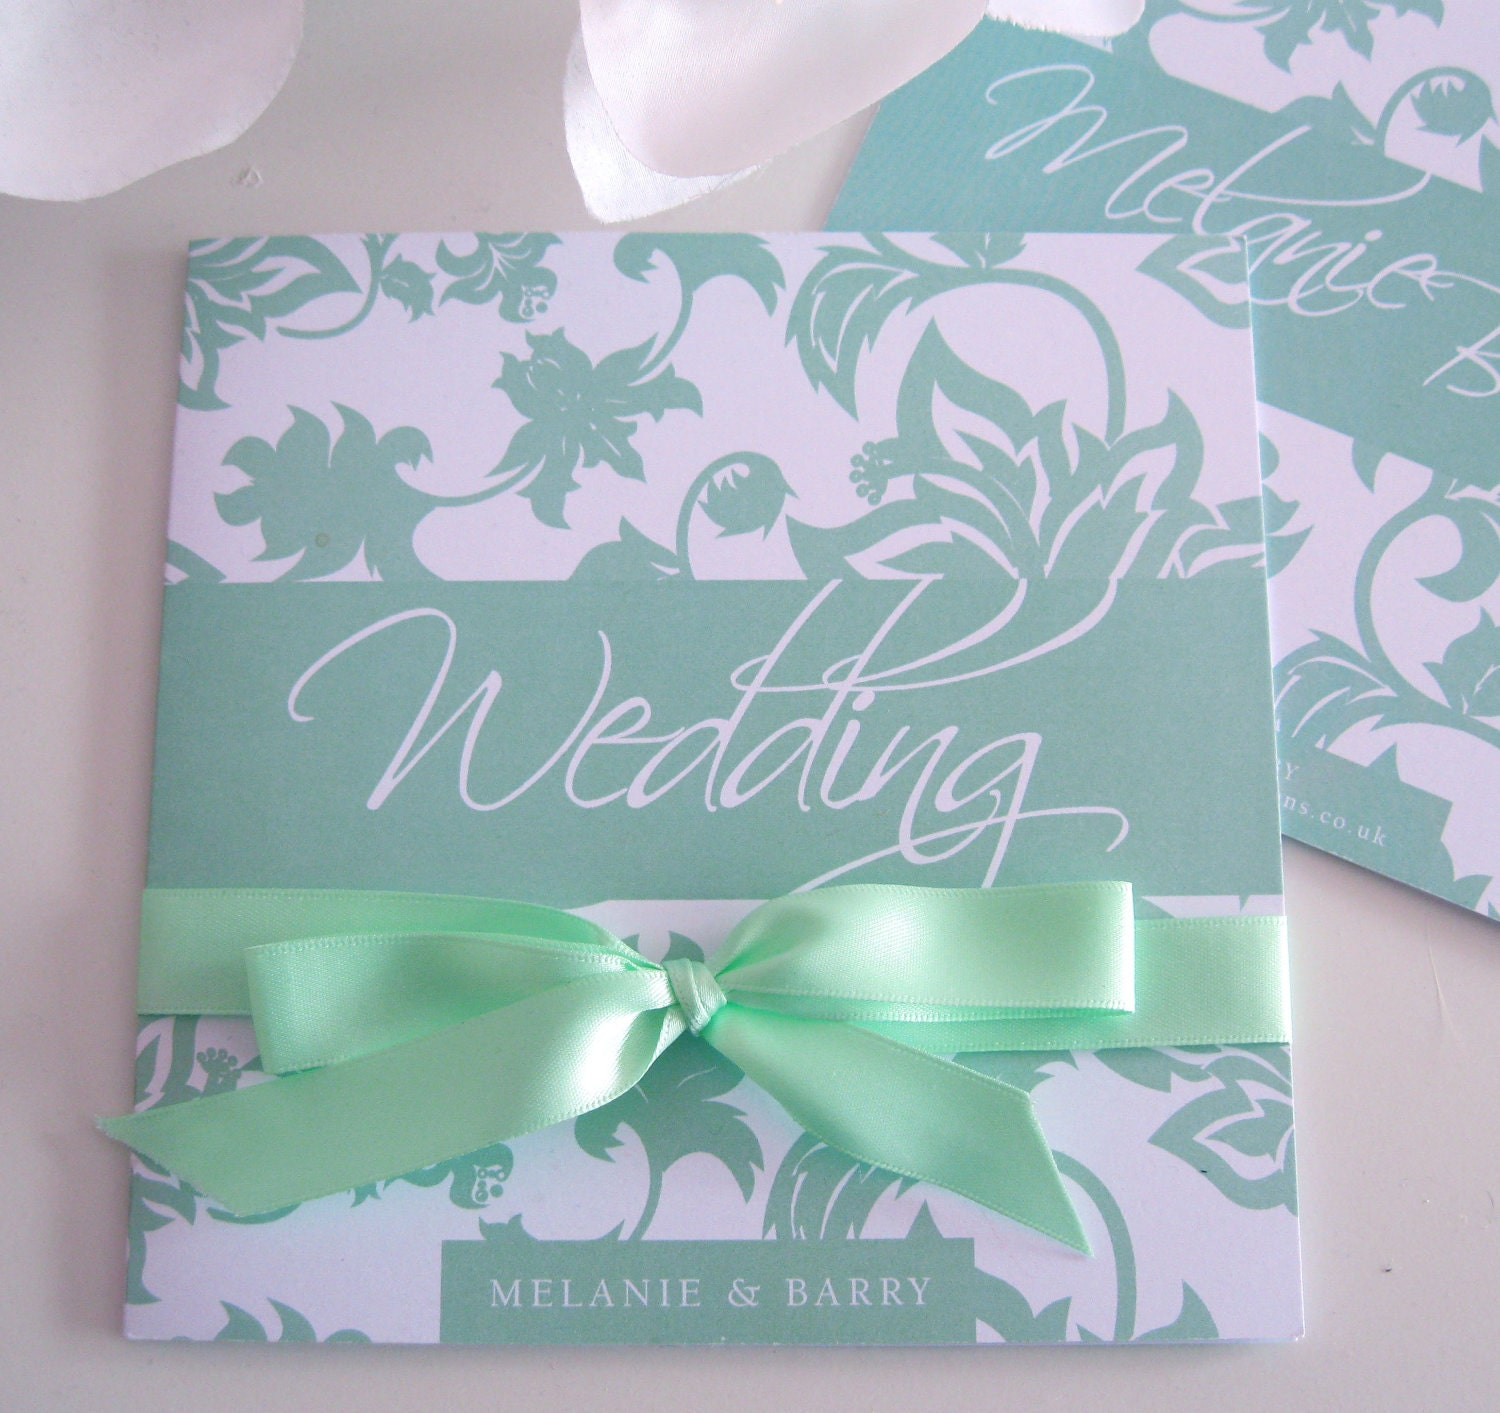 Matching Save The Date And Wedding Invitations: So Vintage Wedding Invites In Mint Green Matching Save The